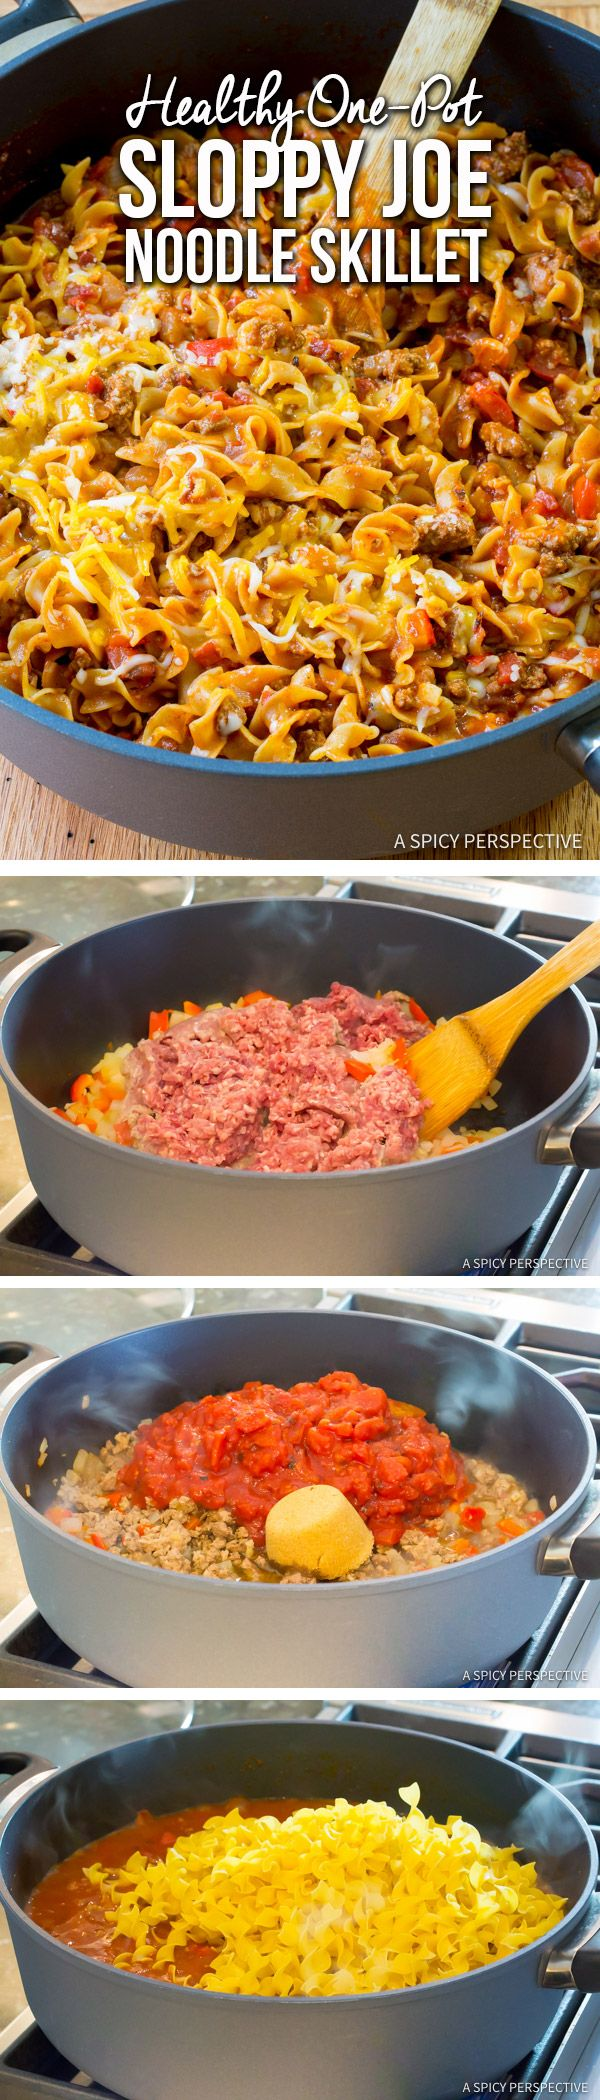 Healthified One-Pot Sloppy Joe Noodle Skillet | ASpicyPerspective.com via @spicyperspectiv